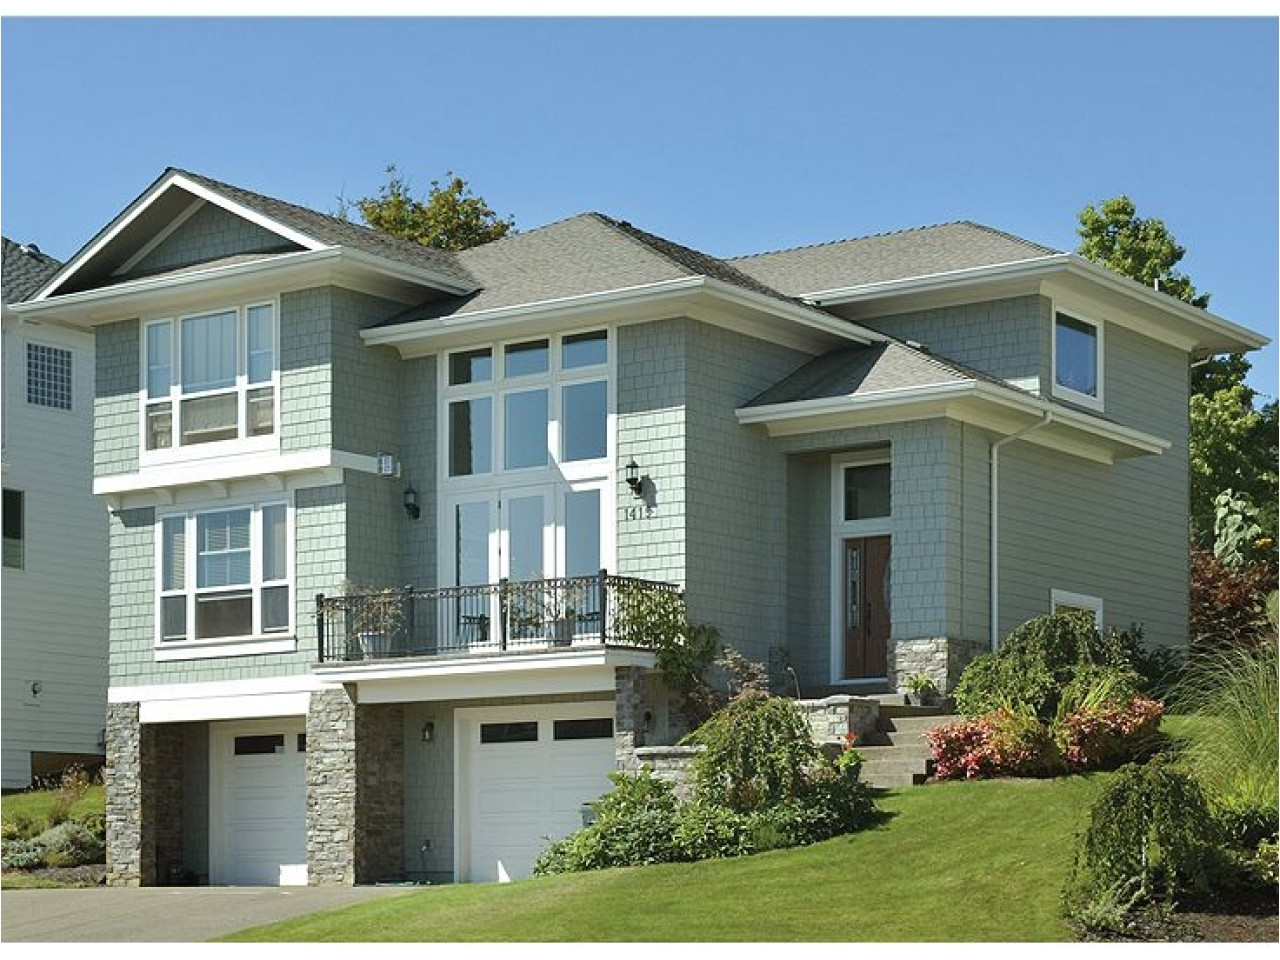 1e6715b754c57124 hillside house plans with drive under garage hillside house plans with garage